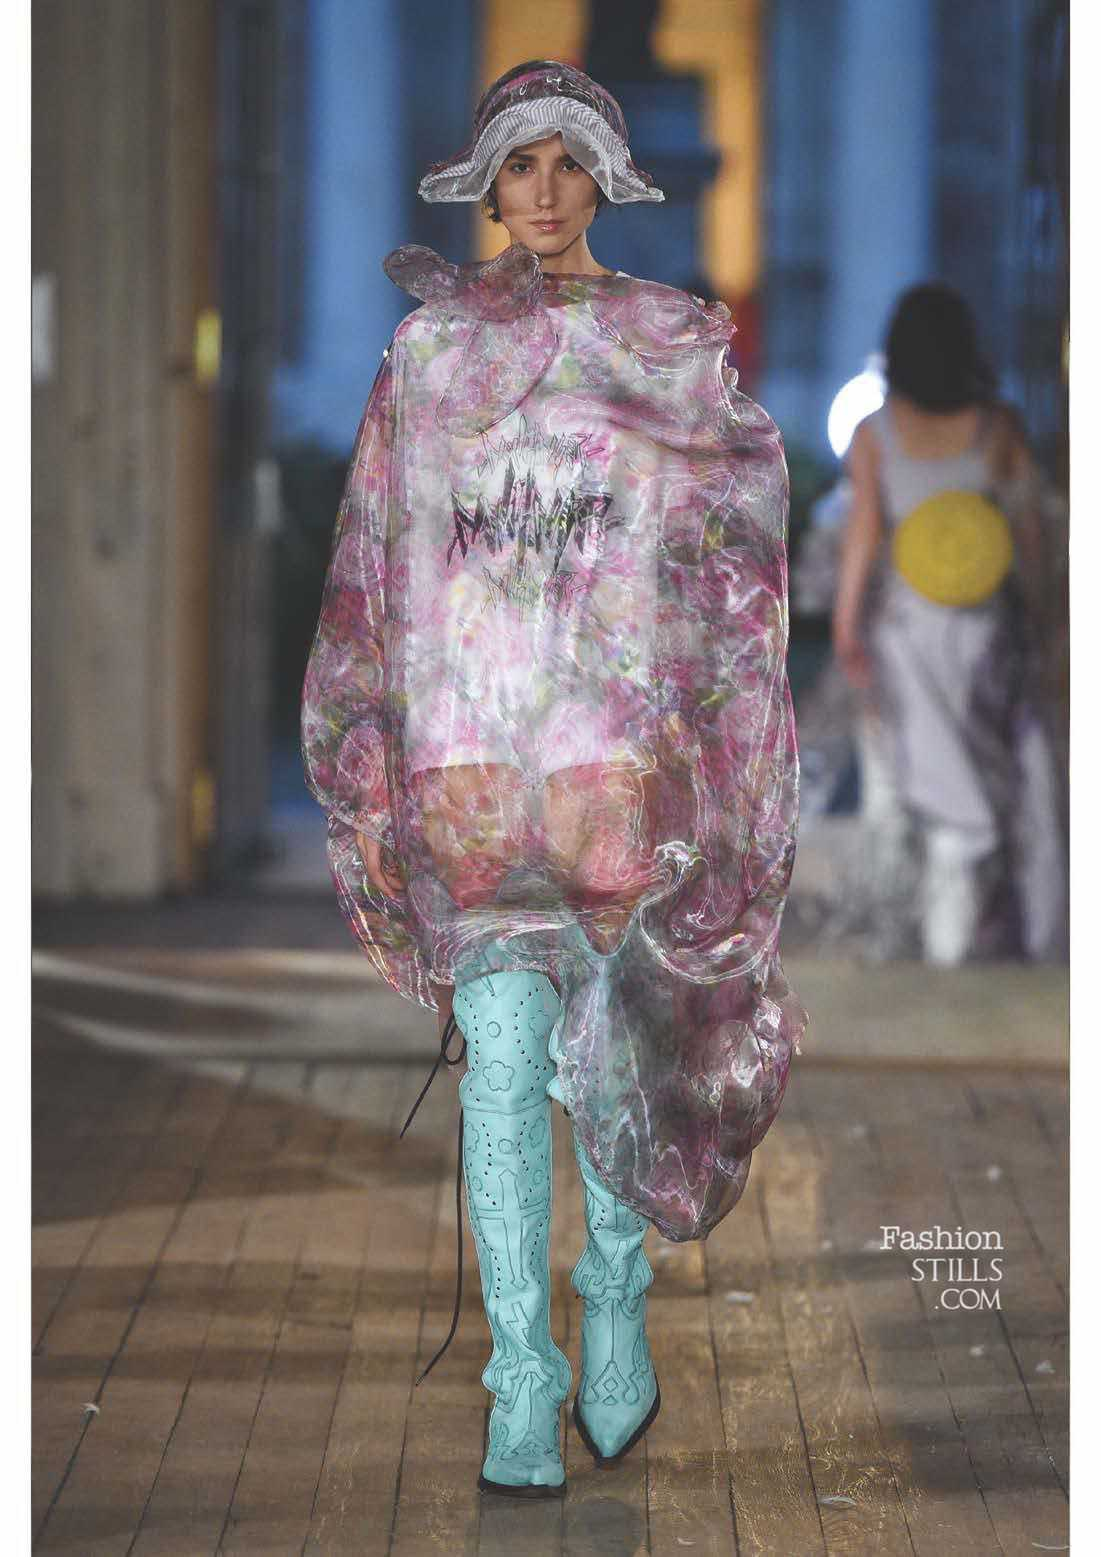 Neith Nyer_1513681565_f7_look-book-_-press-release-ss18-neith-nyer-032.jpg